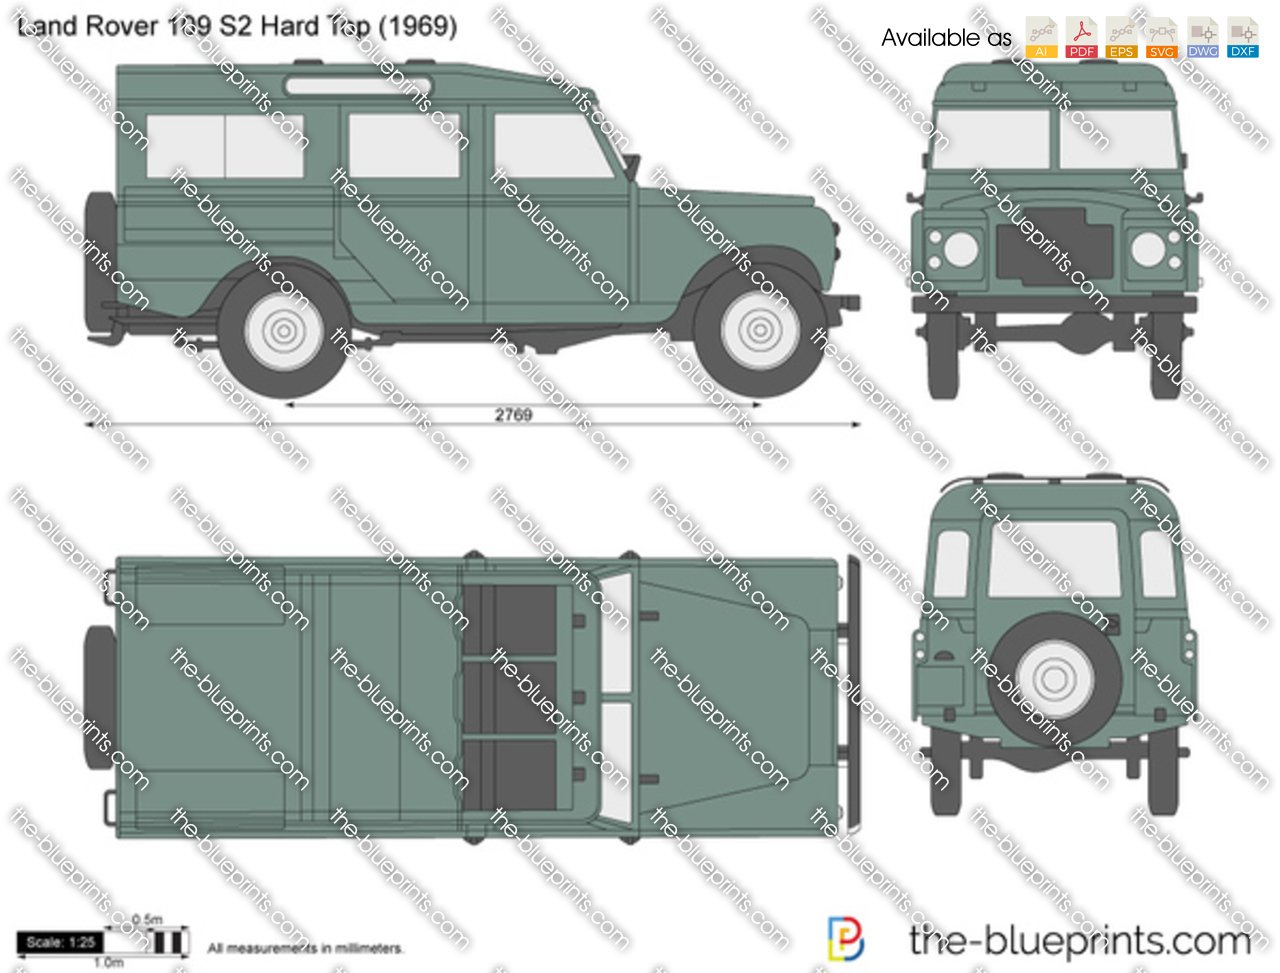 Land Rover 109 S2 Hard Top 1961